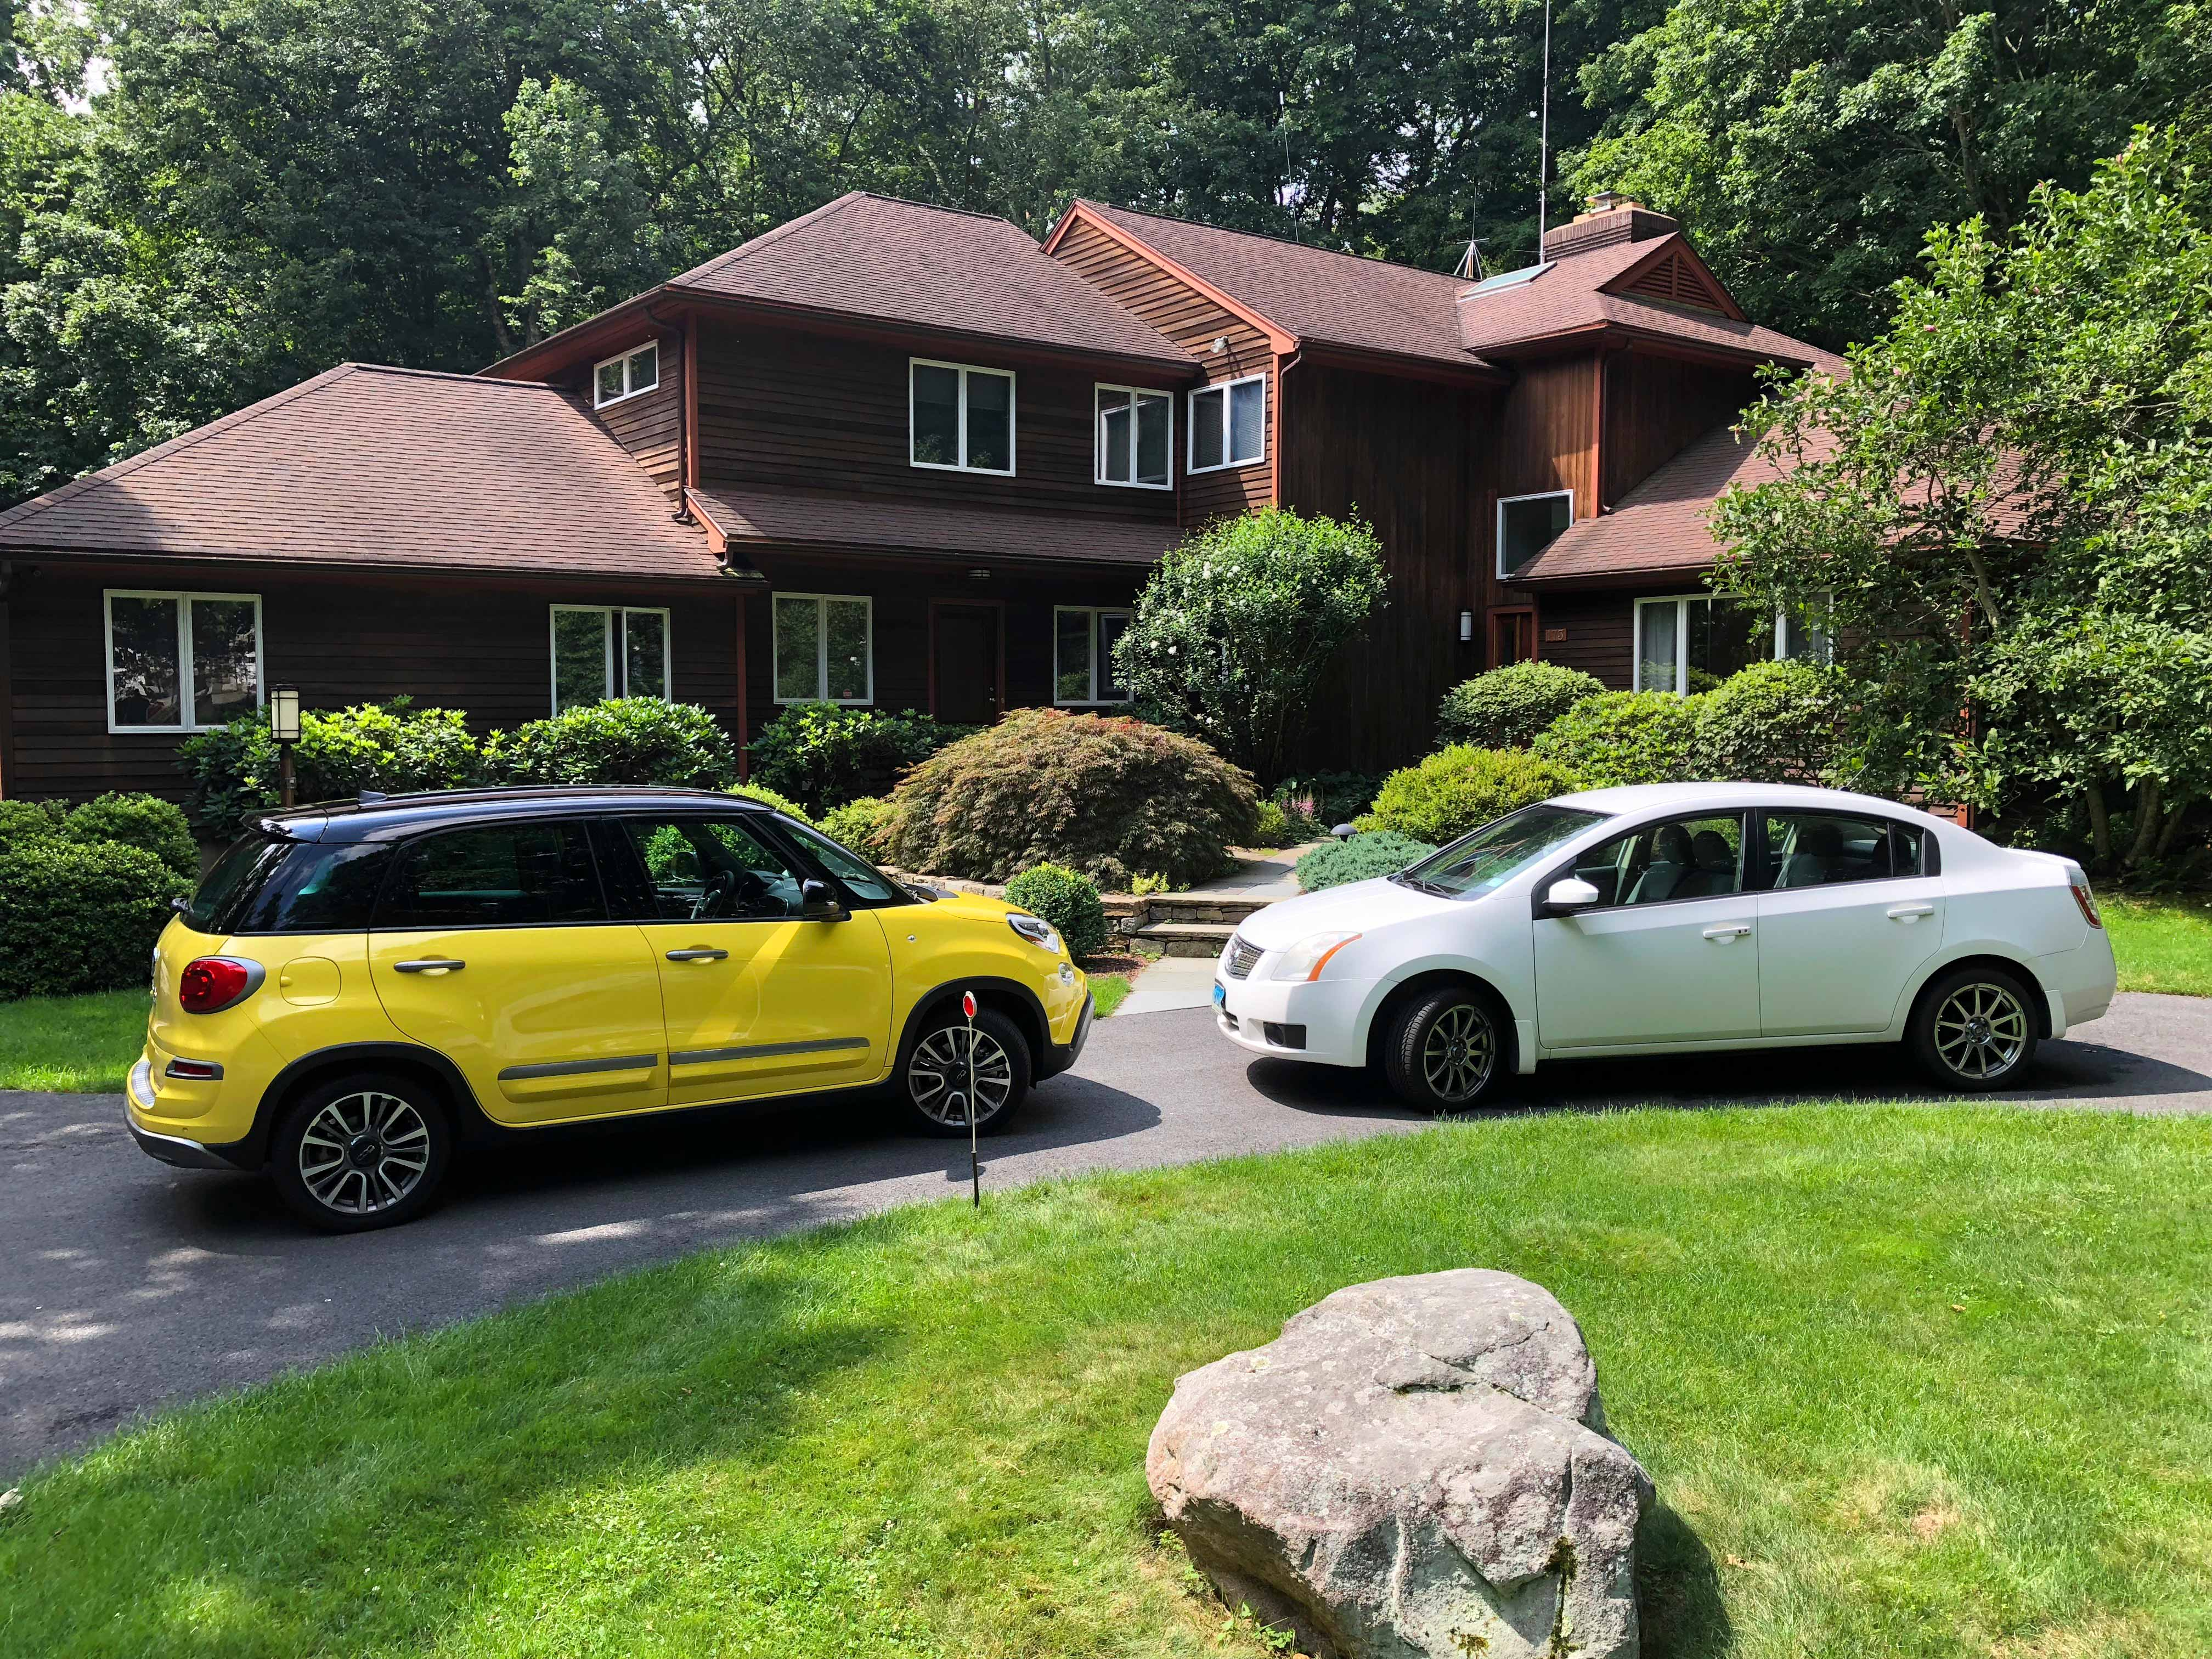 2018 Fiat 500l Test Drive Review A Bloated Mini Bus In Need Of More Power But With Thumpin Bass